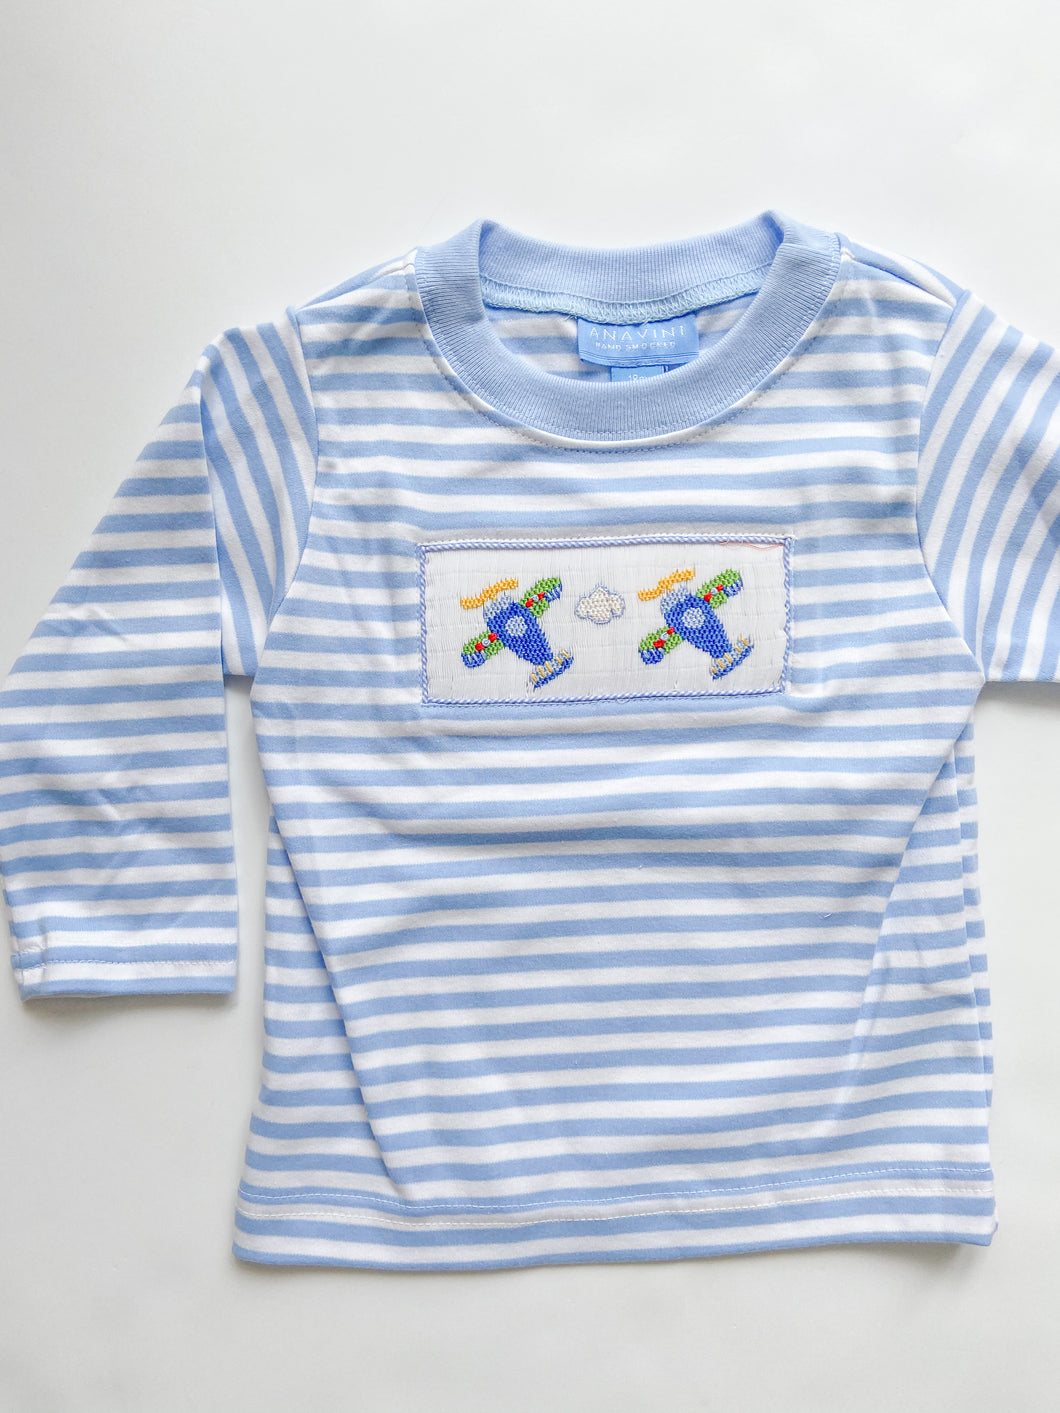 Airplanes Smocked T-Shirt 315P - 4-6 Boys